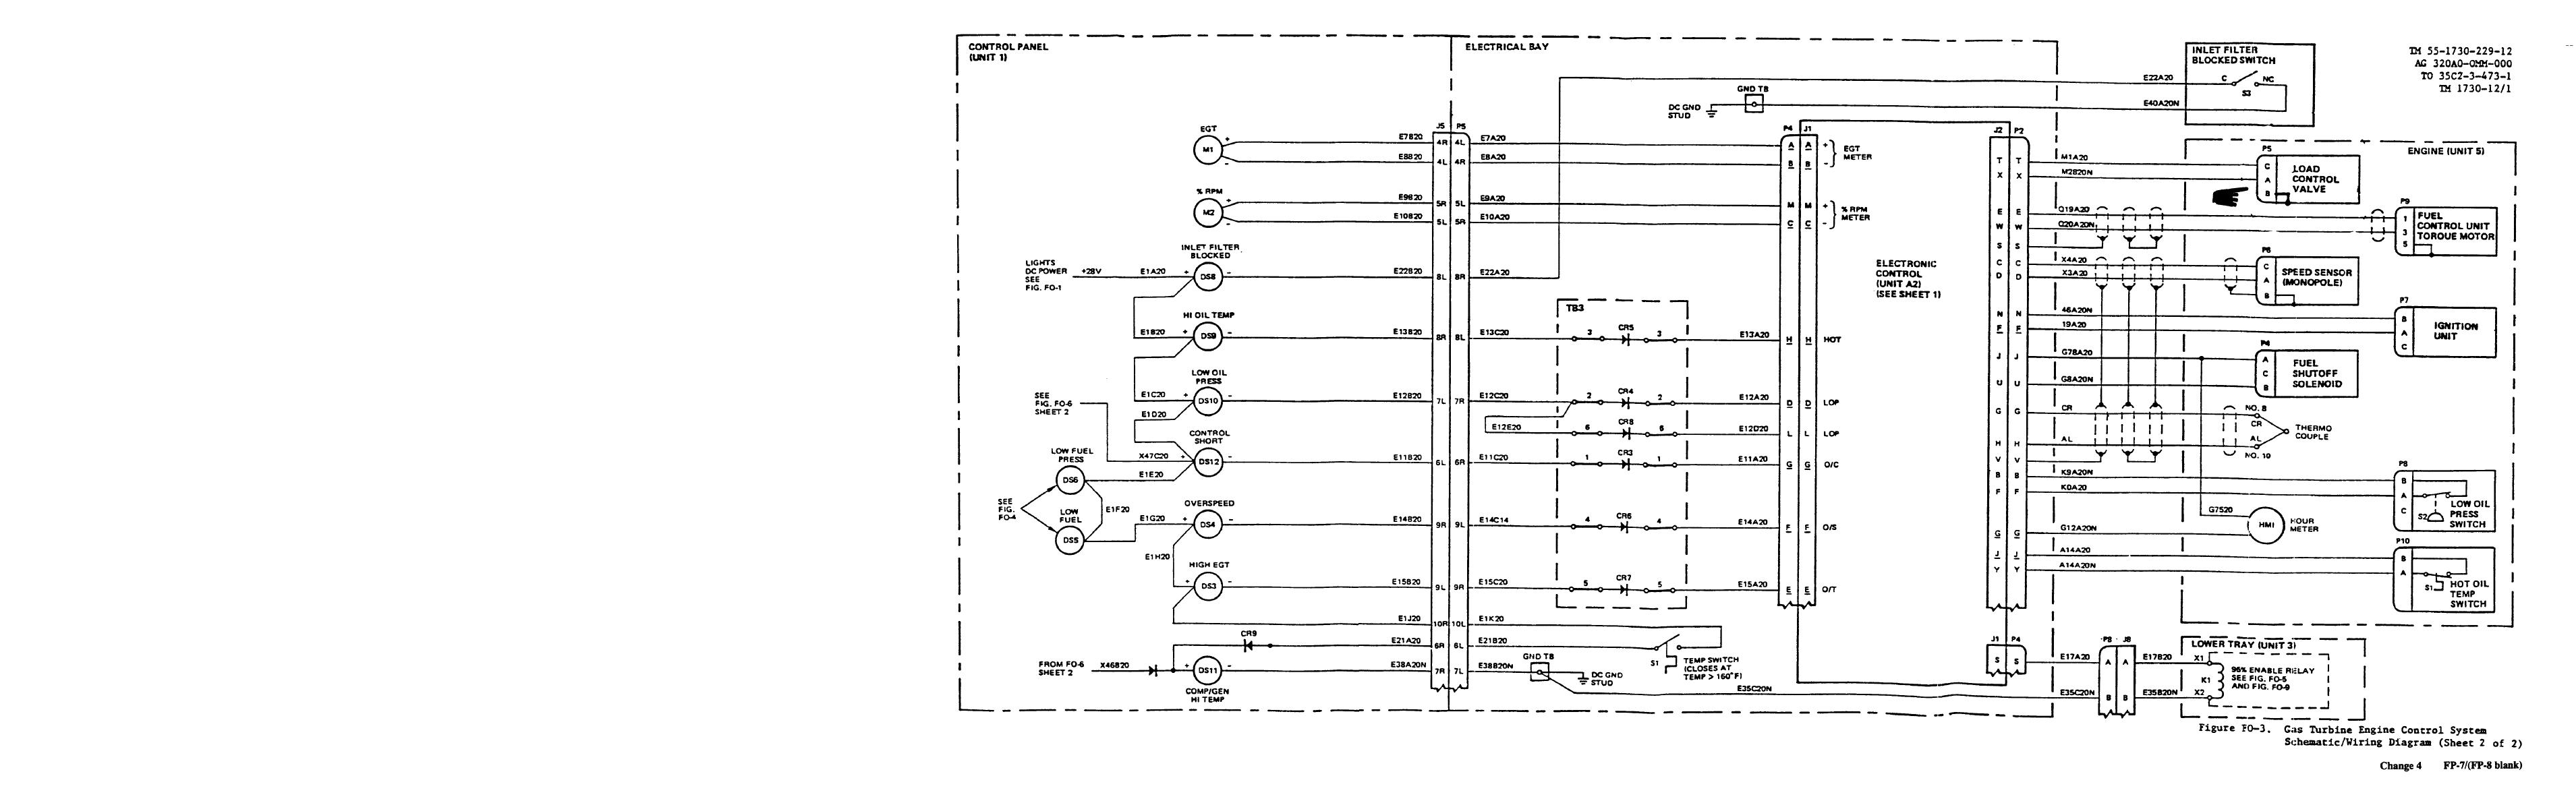 TM 55 1730 229 120545im figure fo 3 gas turbine engine control system schematic wiring wiring diagram for access control system at soozxer.org